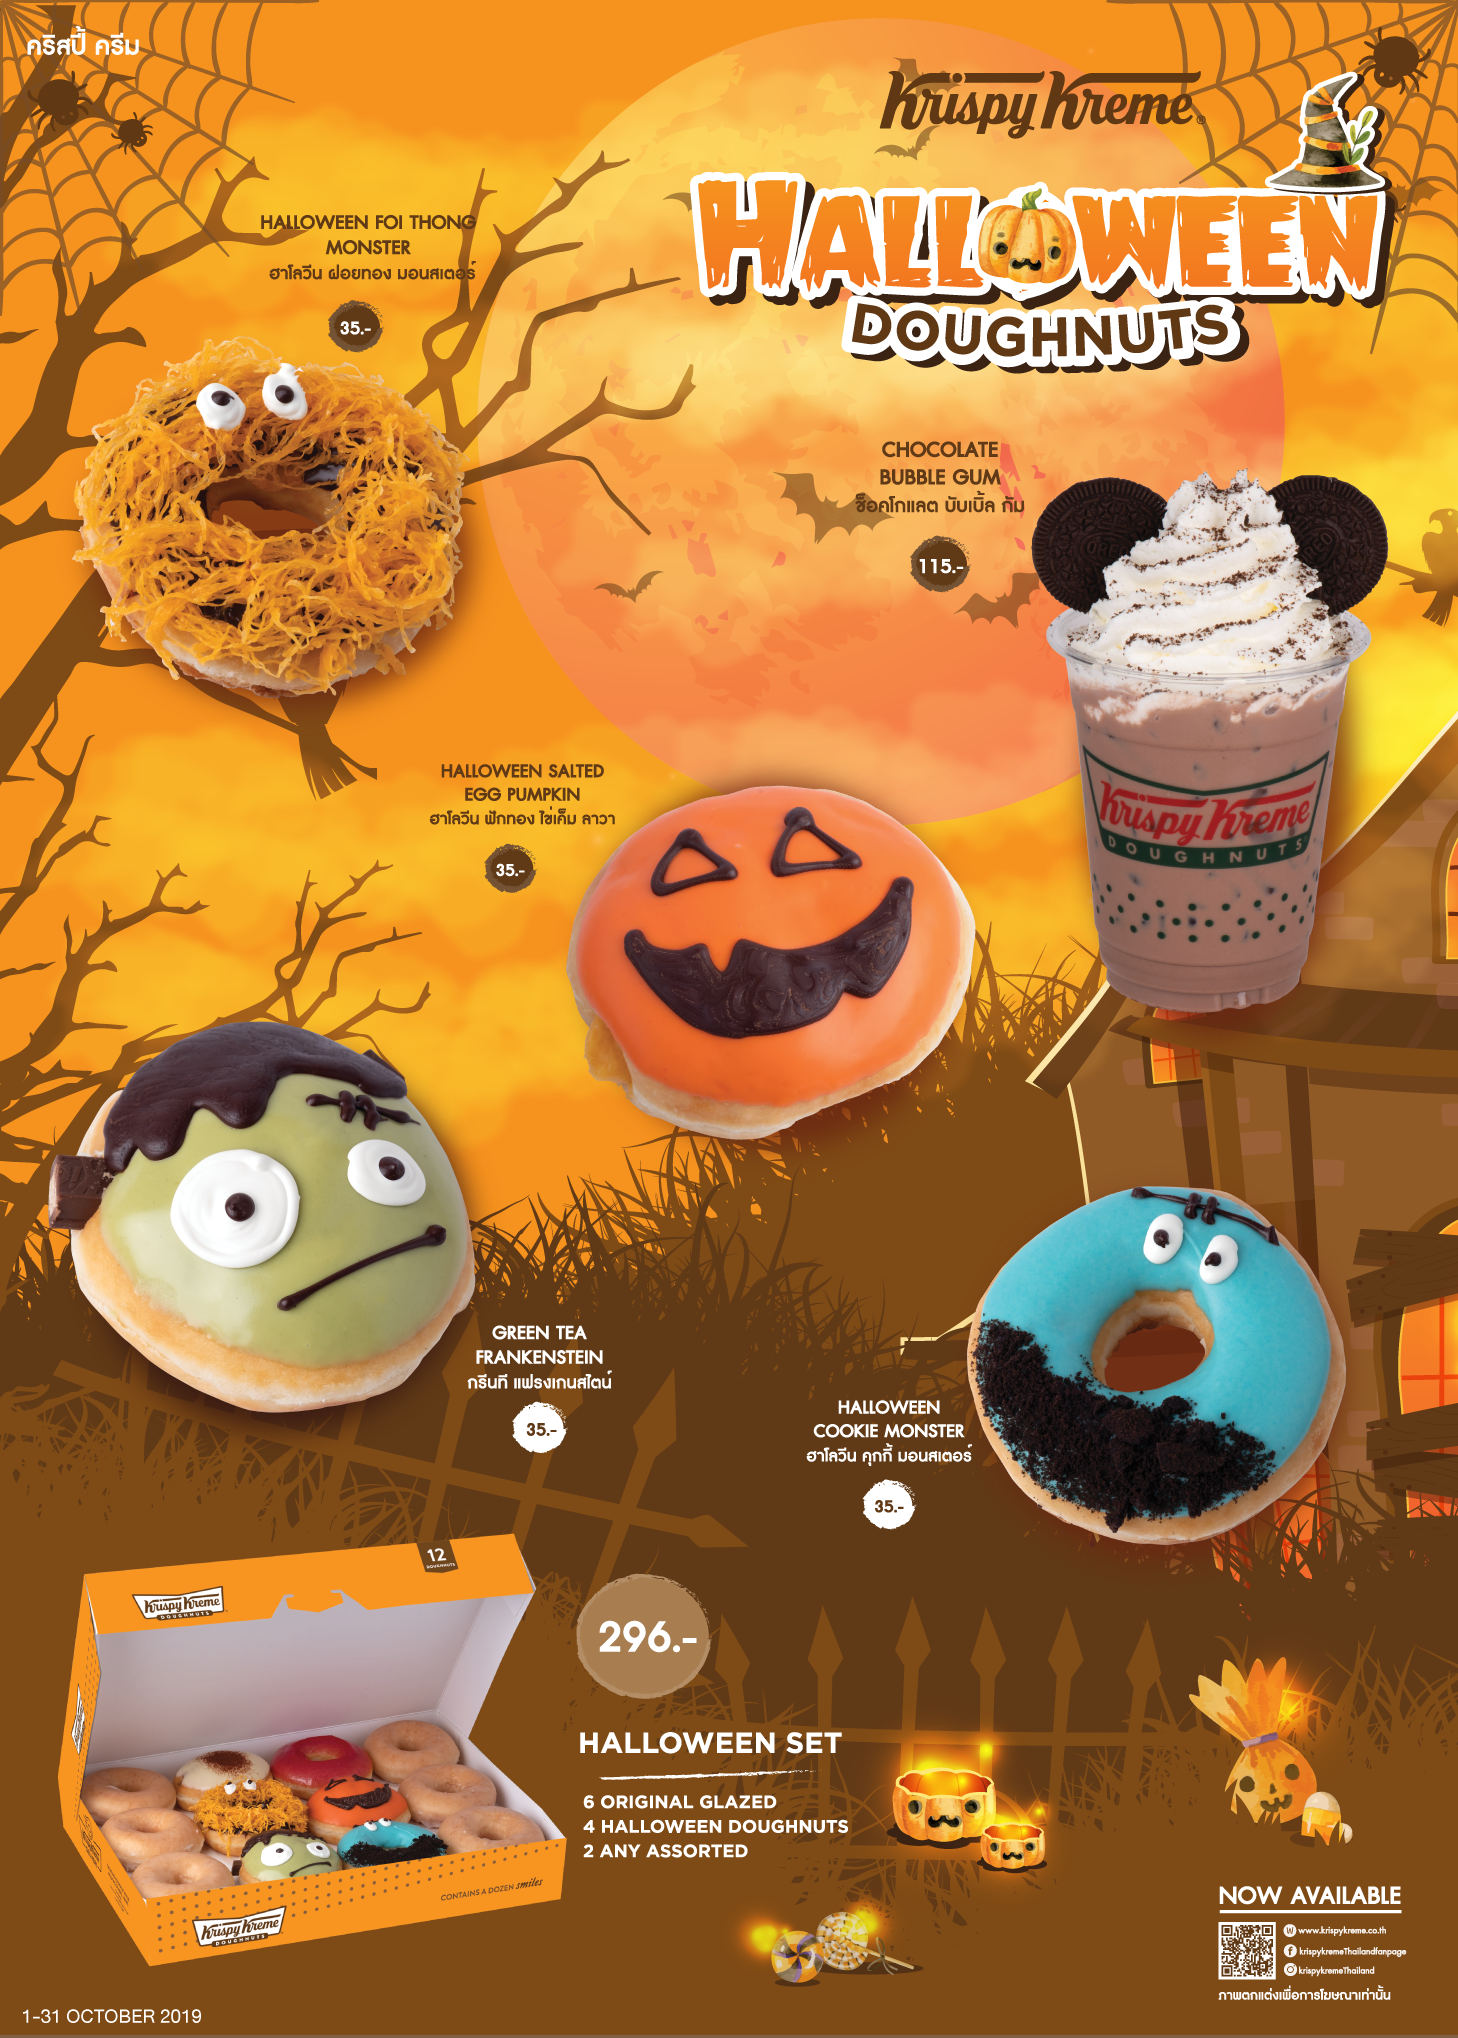 Krispykrema_Halloween_website